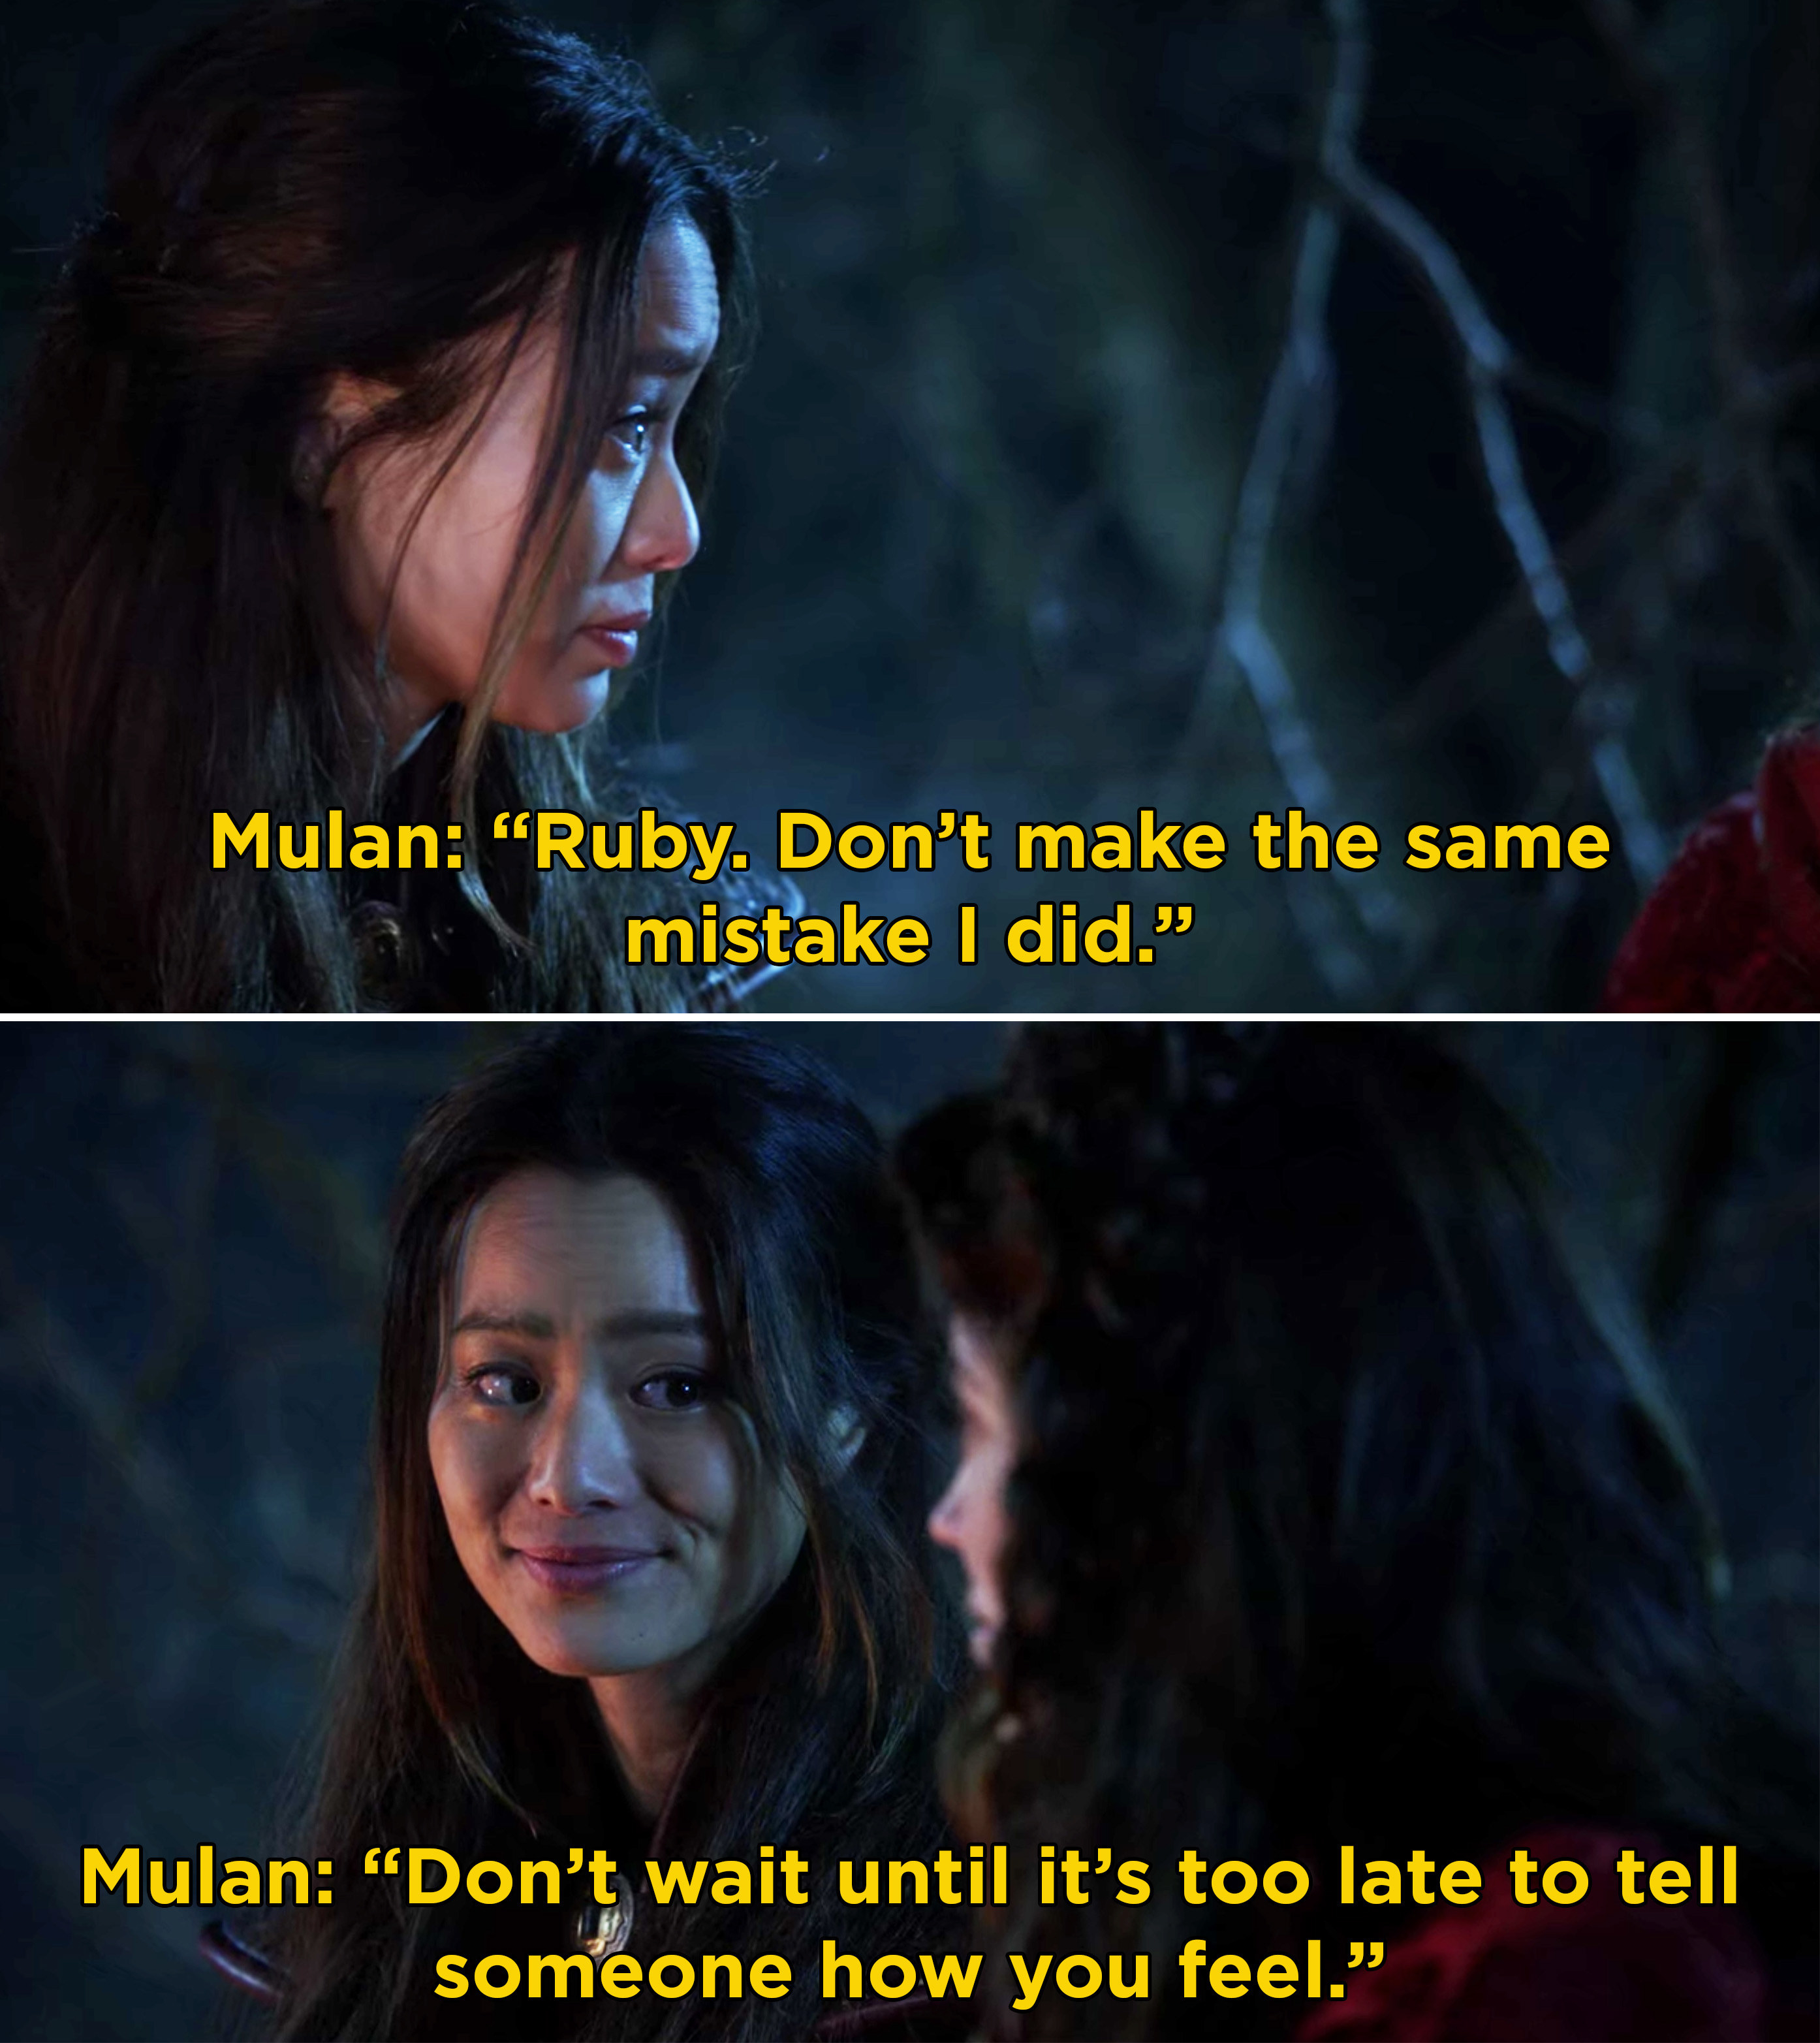 Mulan telling Ruby that she shouldn't wait to tell someone how she truly feels